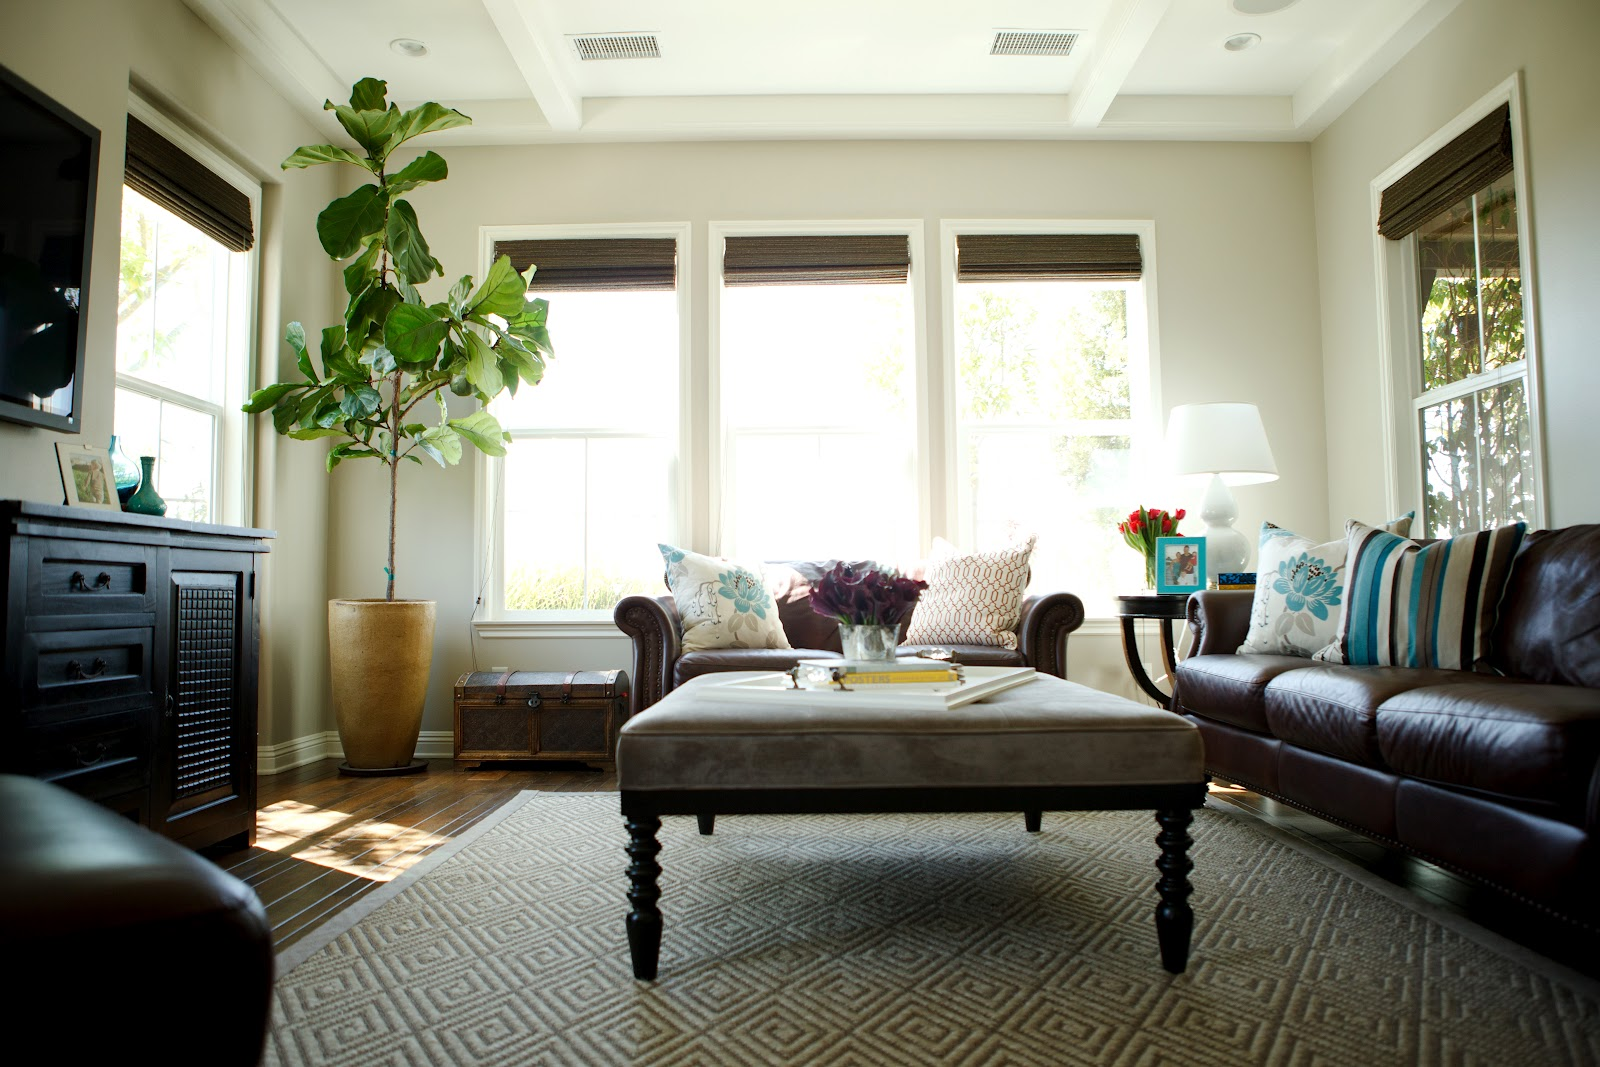 Bdg style may 2012 - Family living room ideas ...